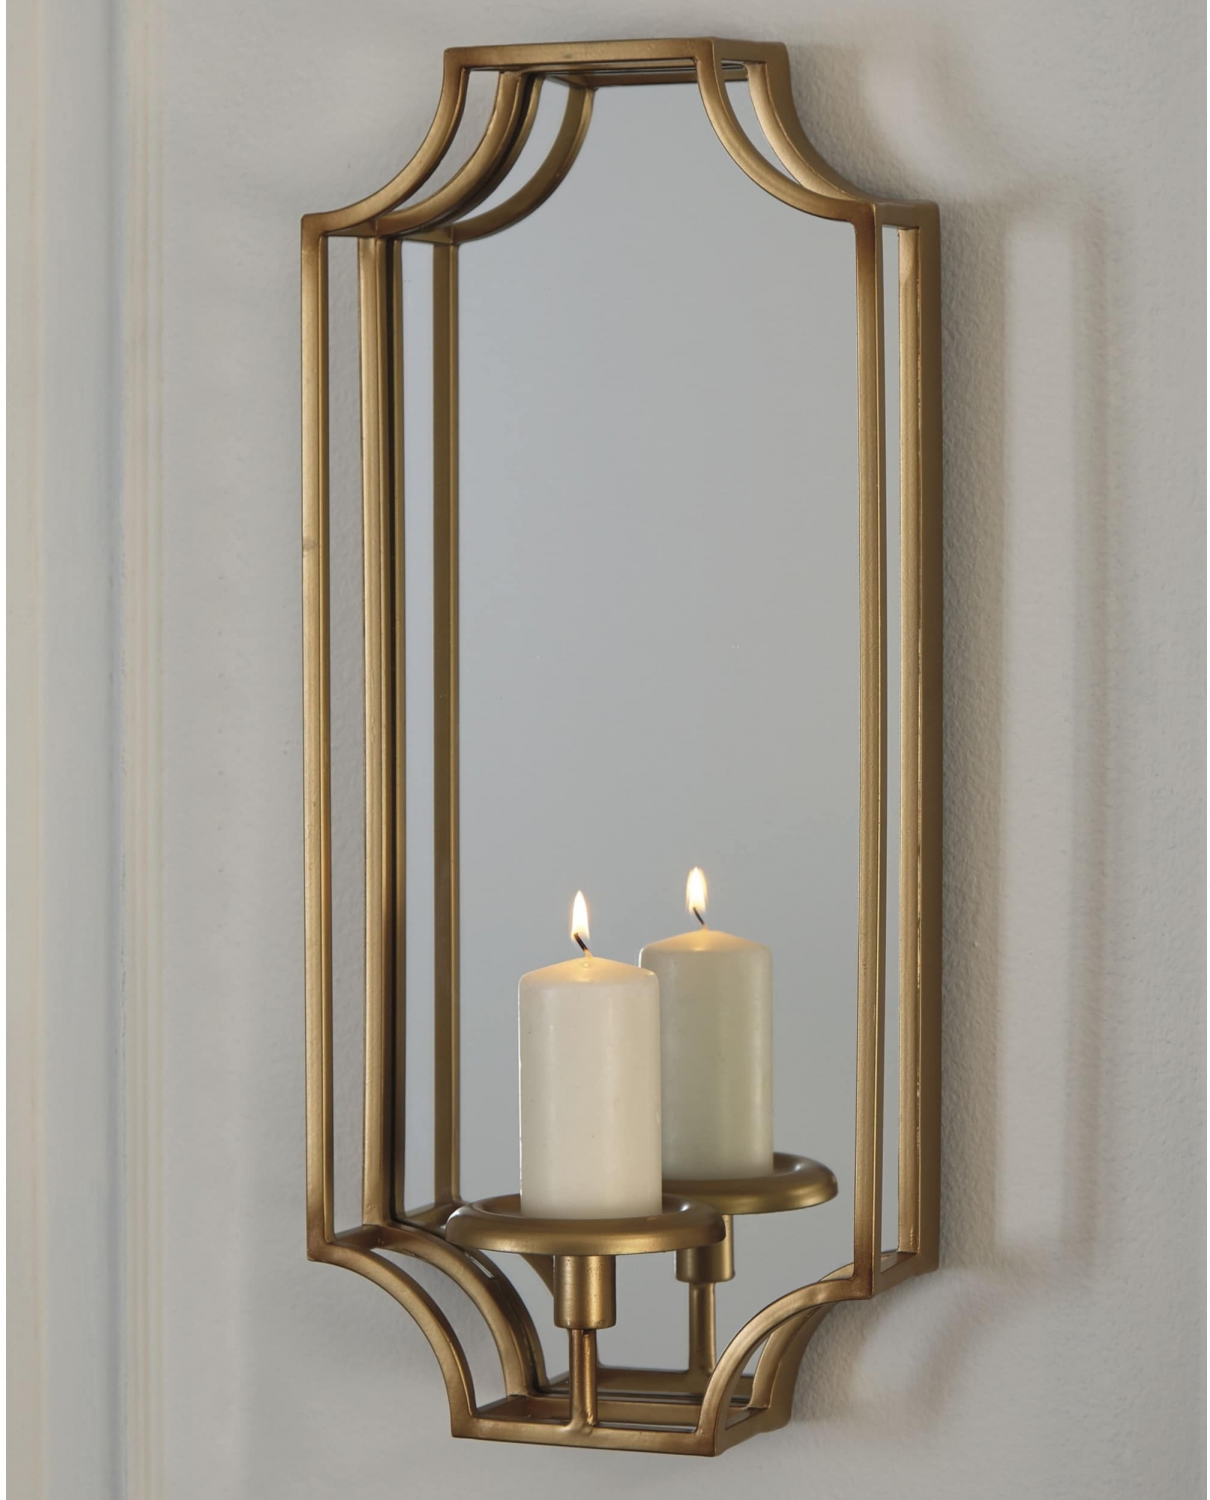 Gold Metal Wall Sconce Mirrored Ornate Pillar Candle Holder Hanging Home Decor 707430469536 Ebay